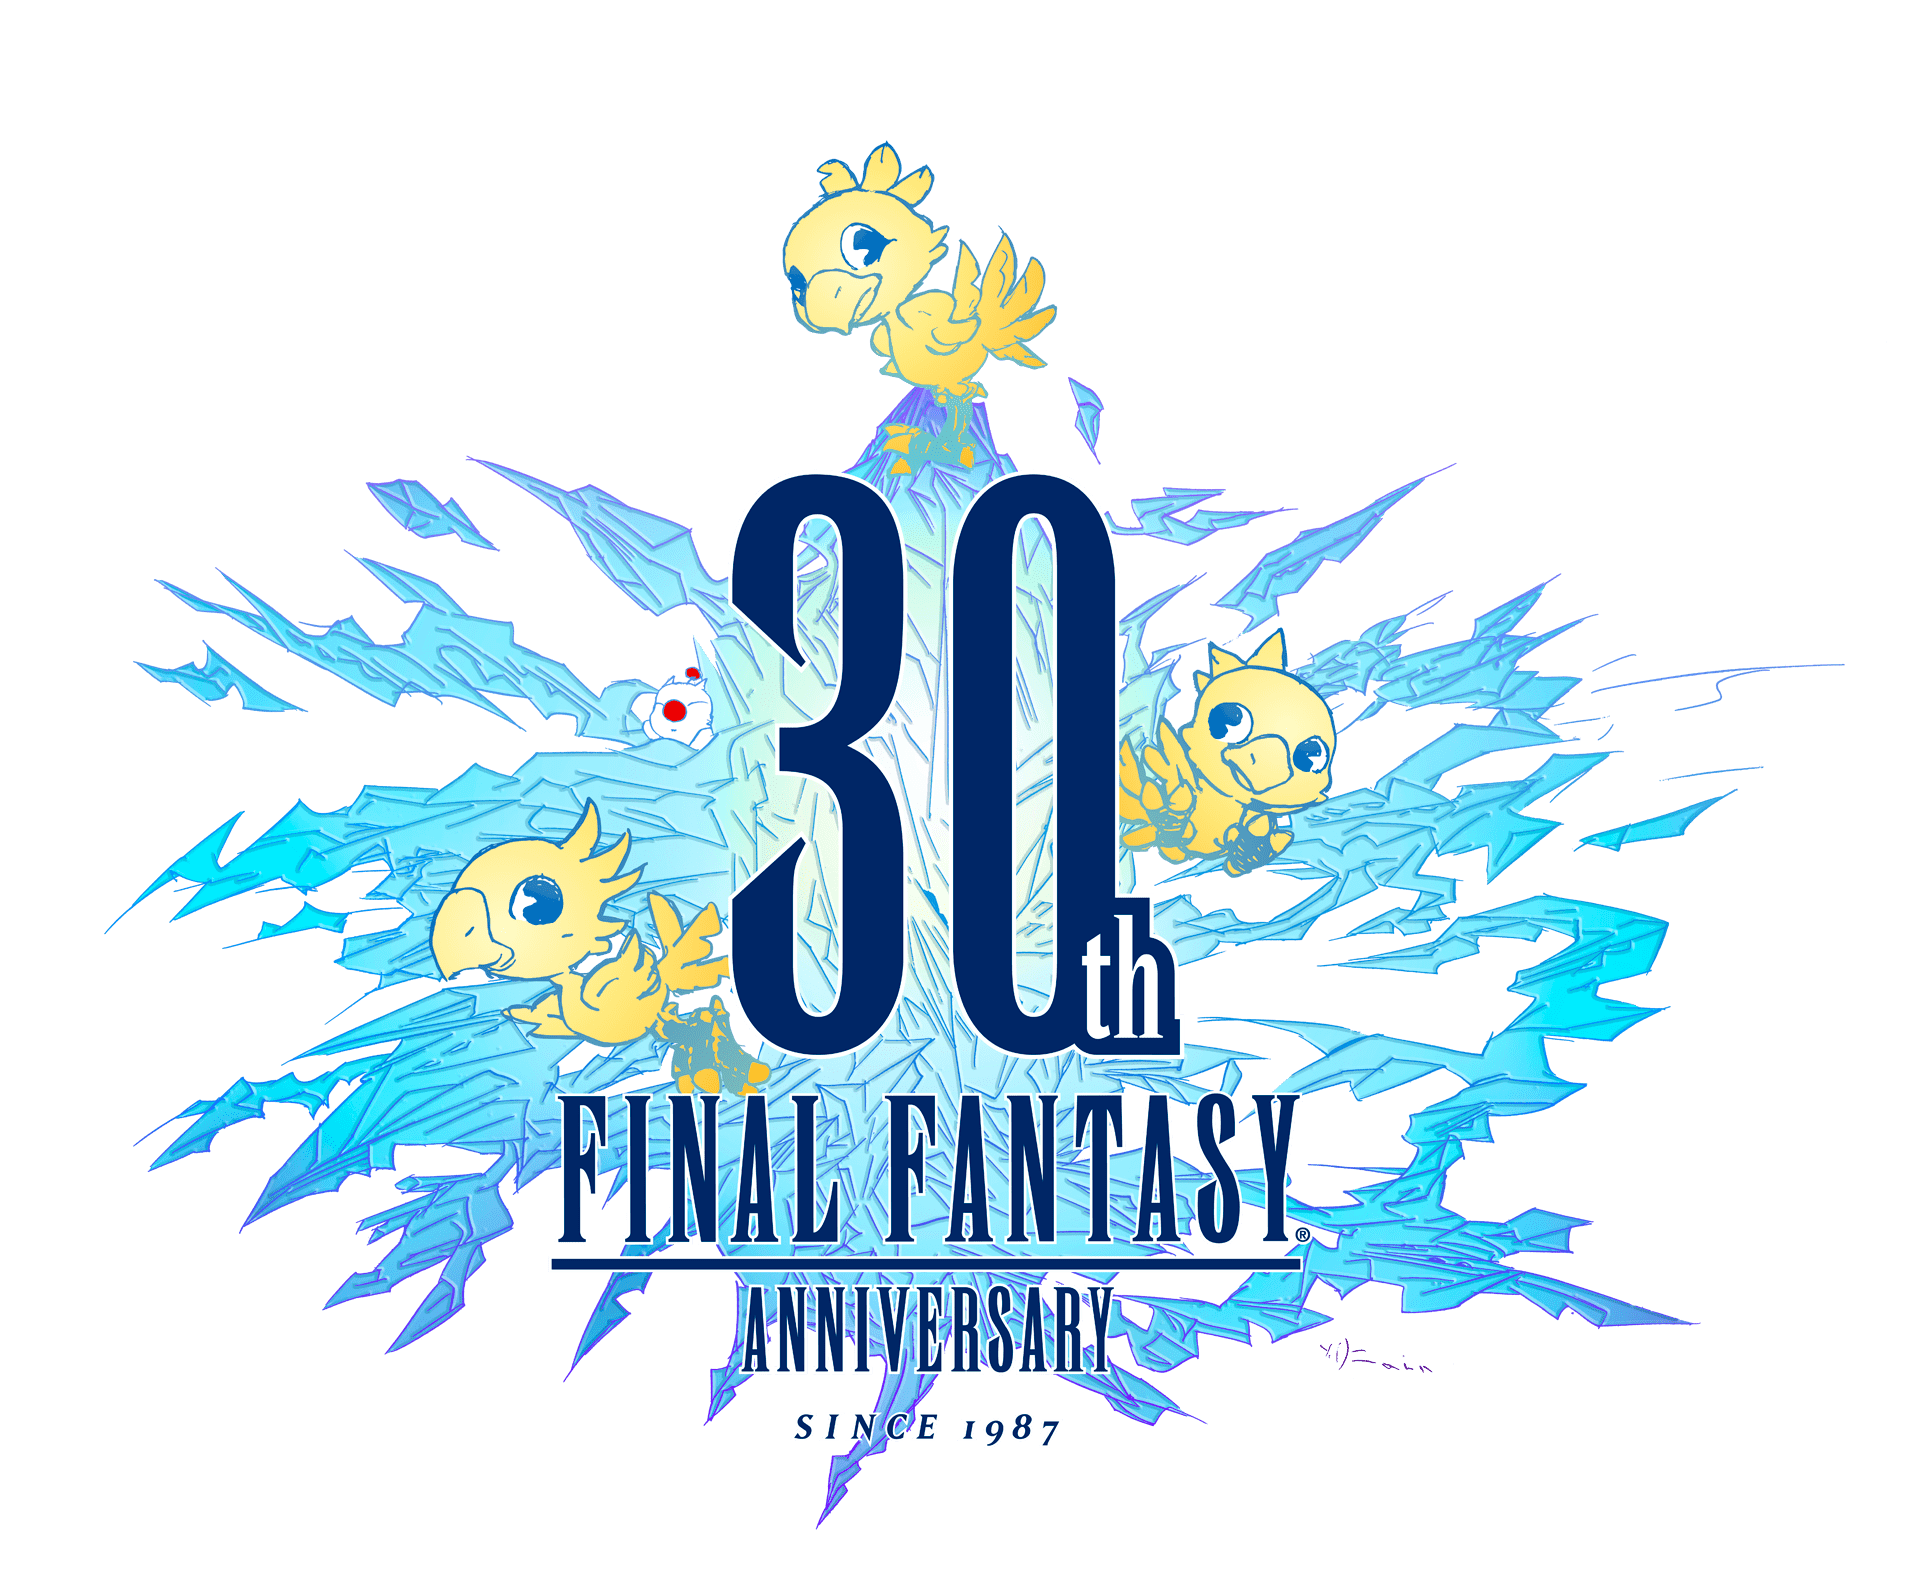 https://vignette.wikia.nocookie.net/finalfantasy/images/0/01/Final-Fantasy-30th-Anniversary-Logo.png/revision/latest?cb=20170520163049